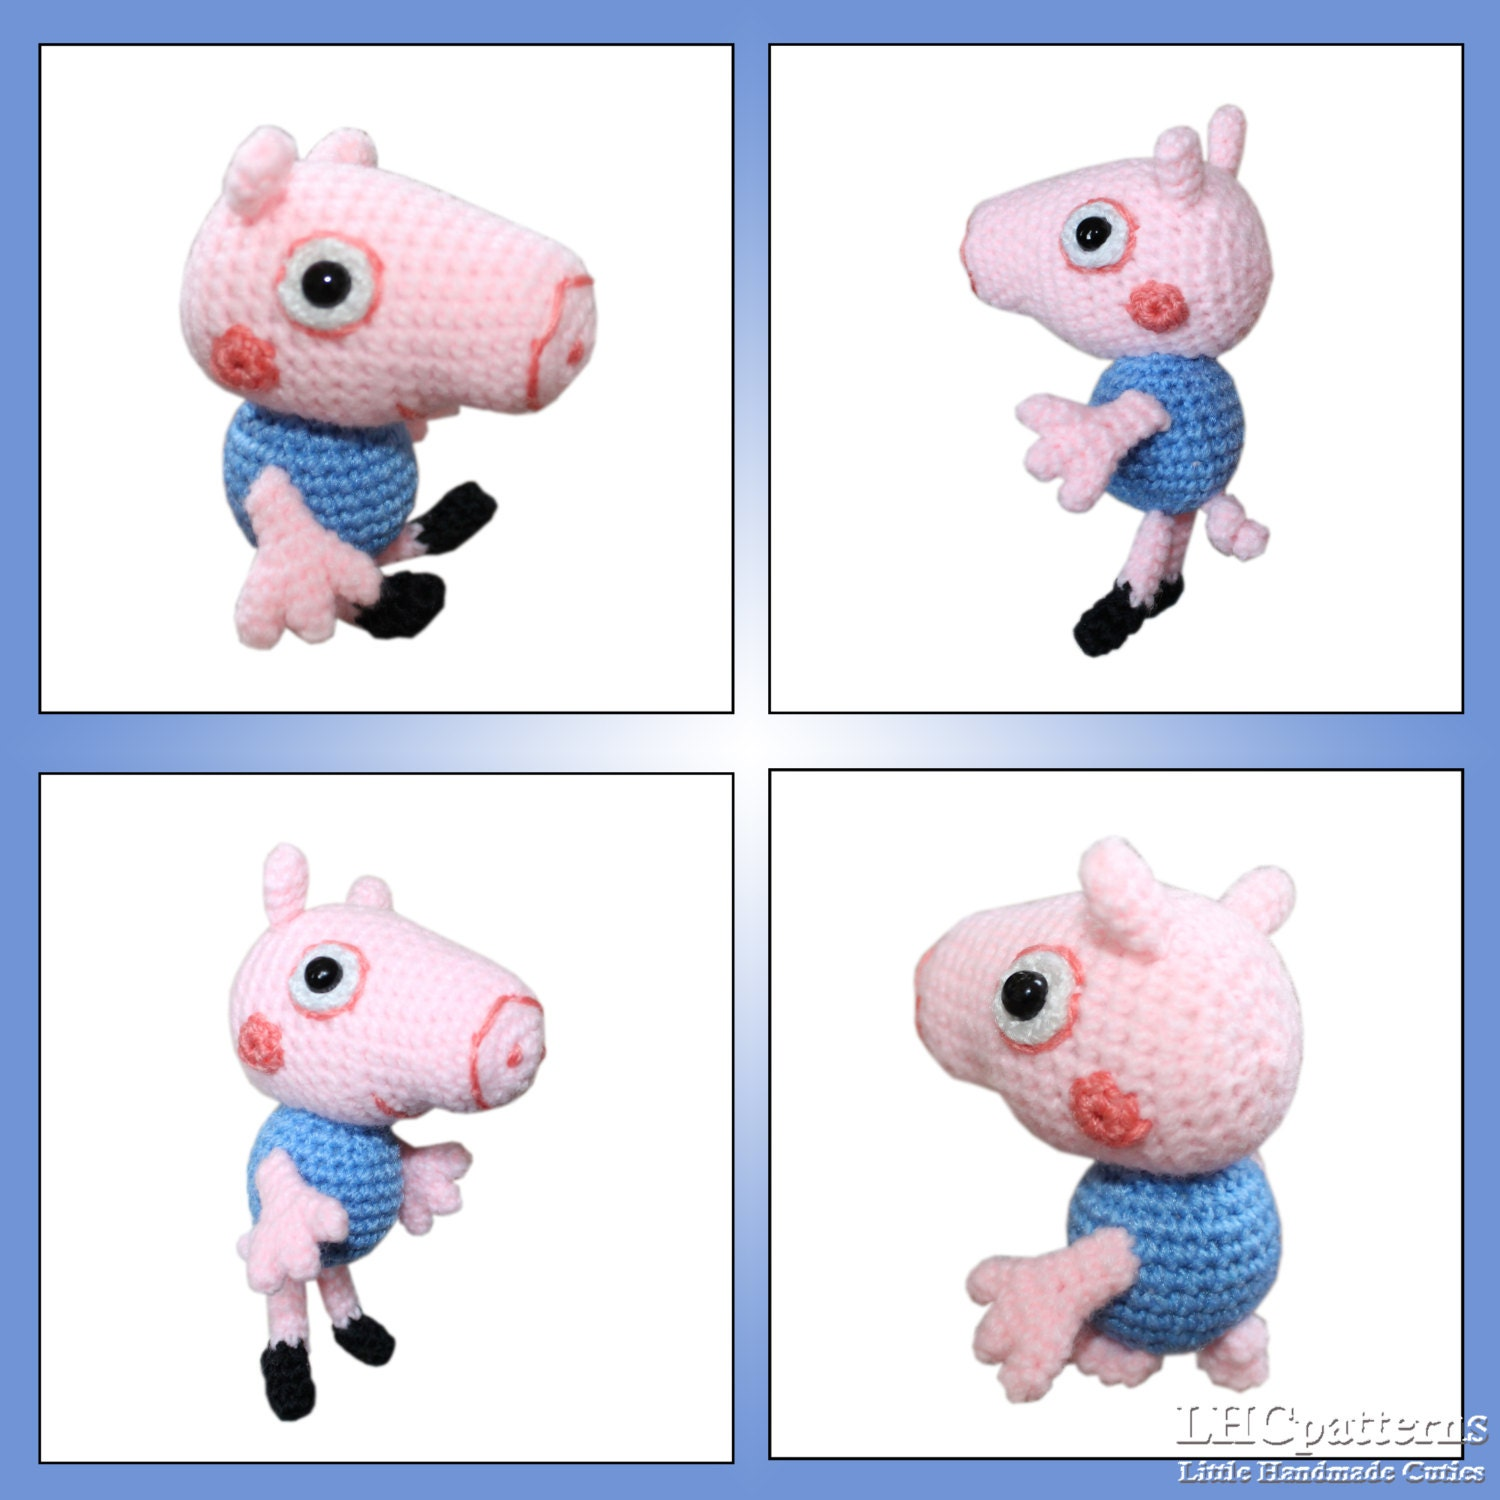 Peppa pig sewing patterns.pdf - Persuasion The Wild And Wanton Edition